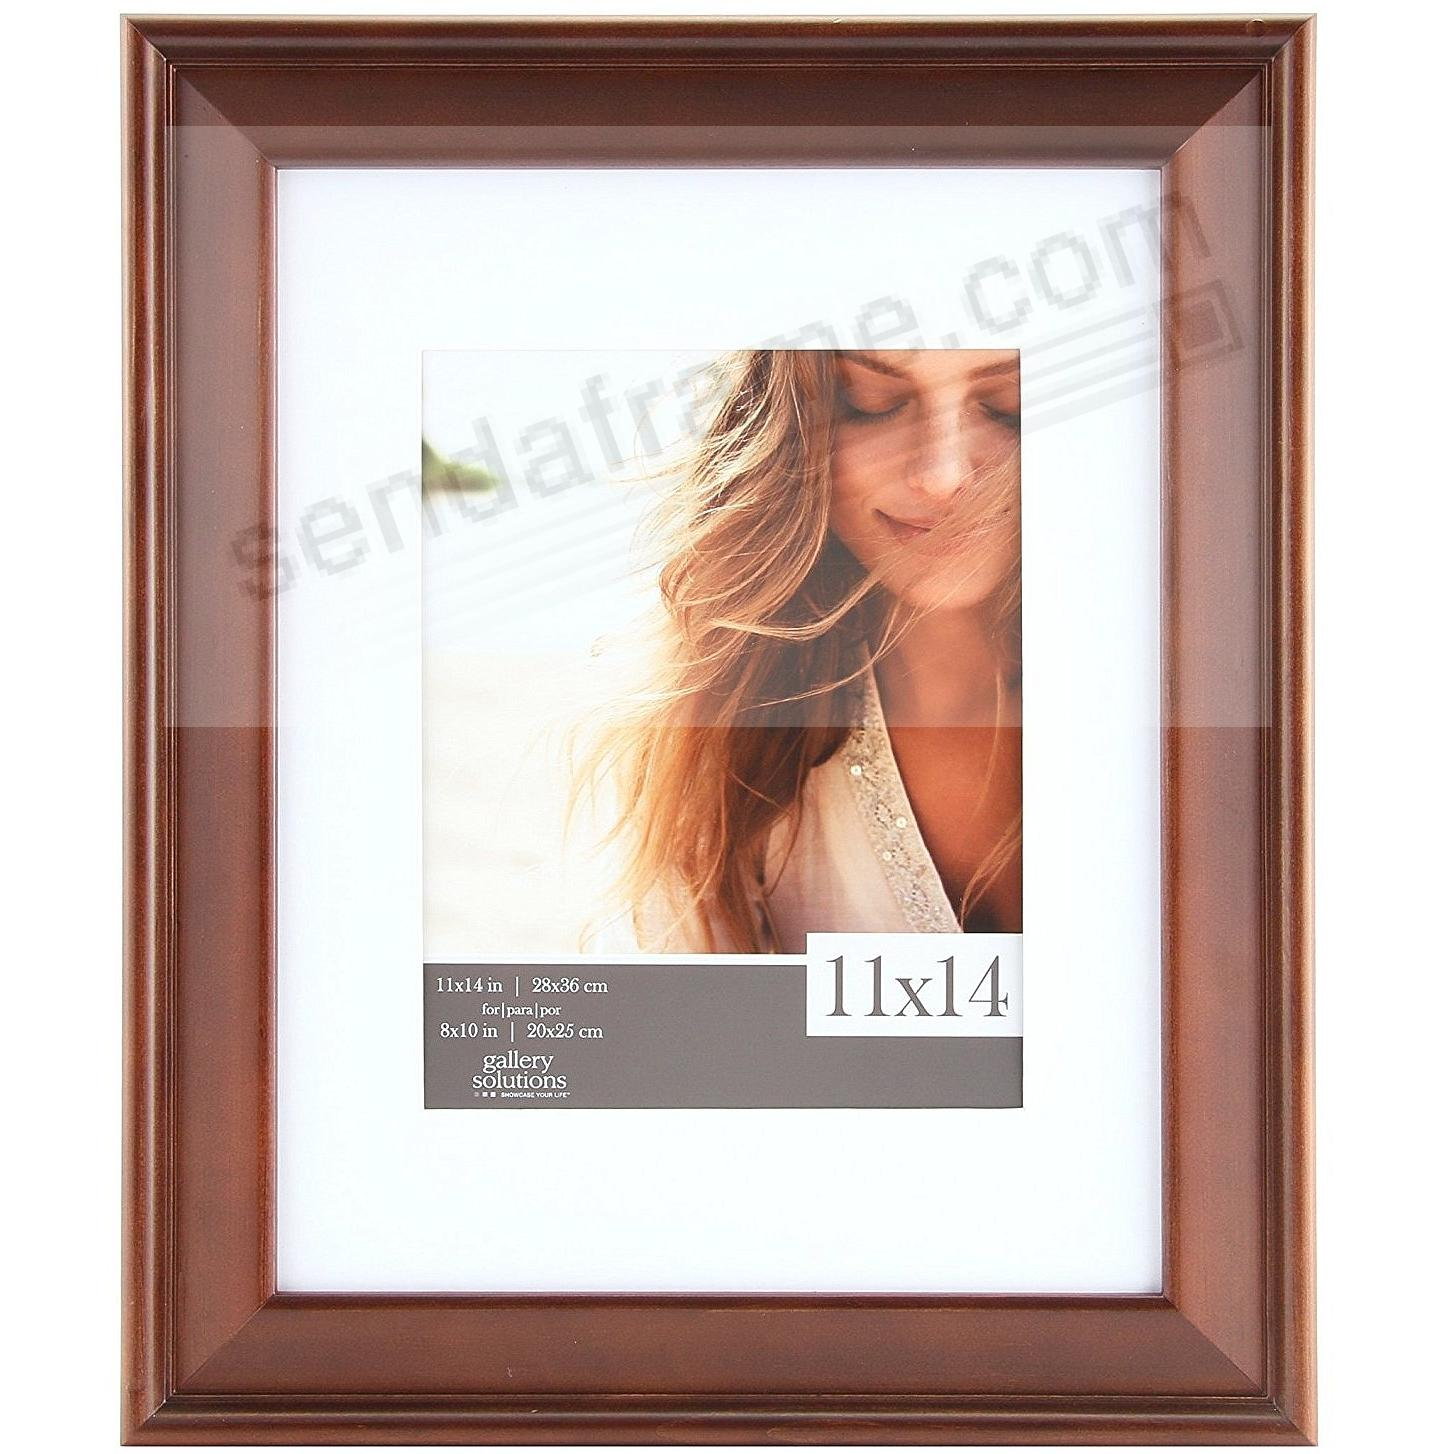 Walnut Wood Wall Frame 11x14 matted to 8x10 by Gallery Solutions™